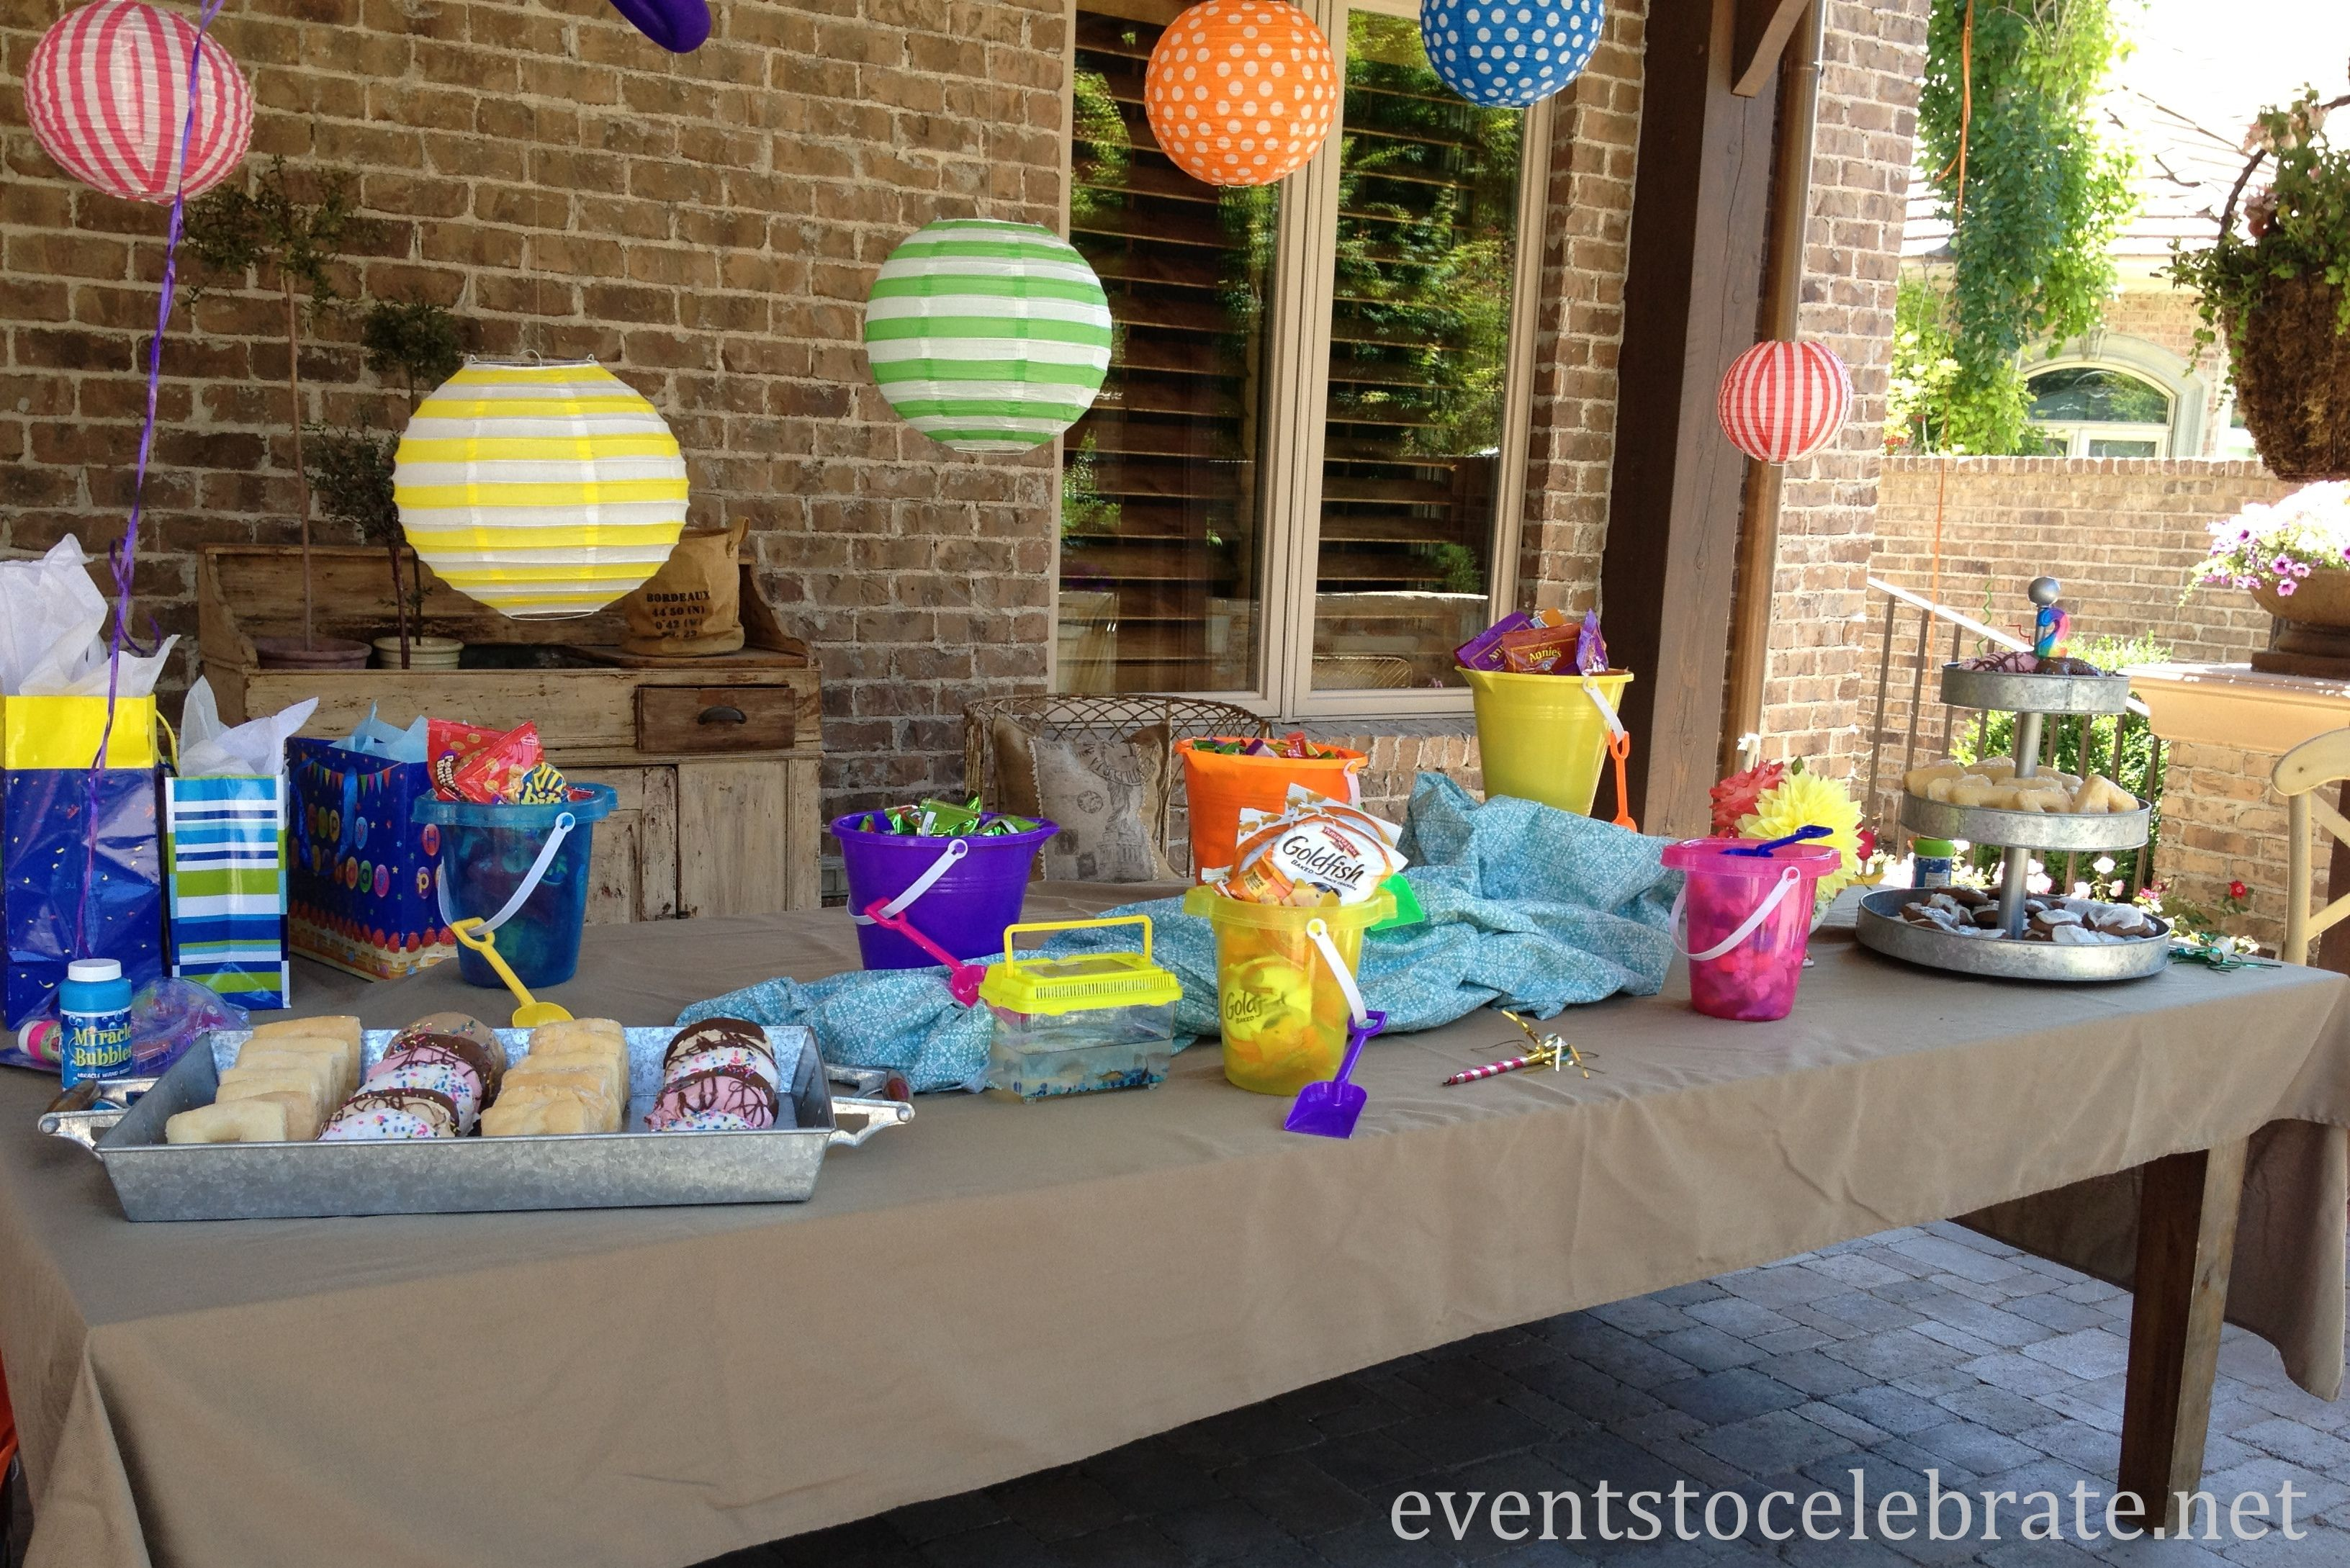 inflatable floats layer entertainment that pixels decor net table school attached cloths party decorations to pin beach s back pinterest fishing